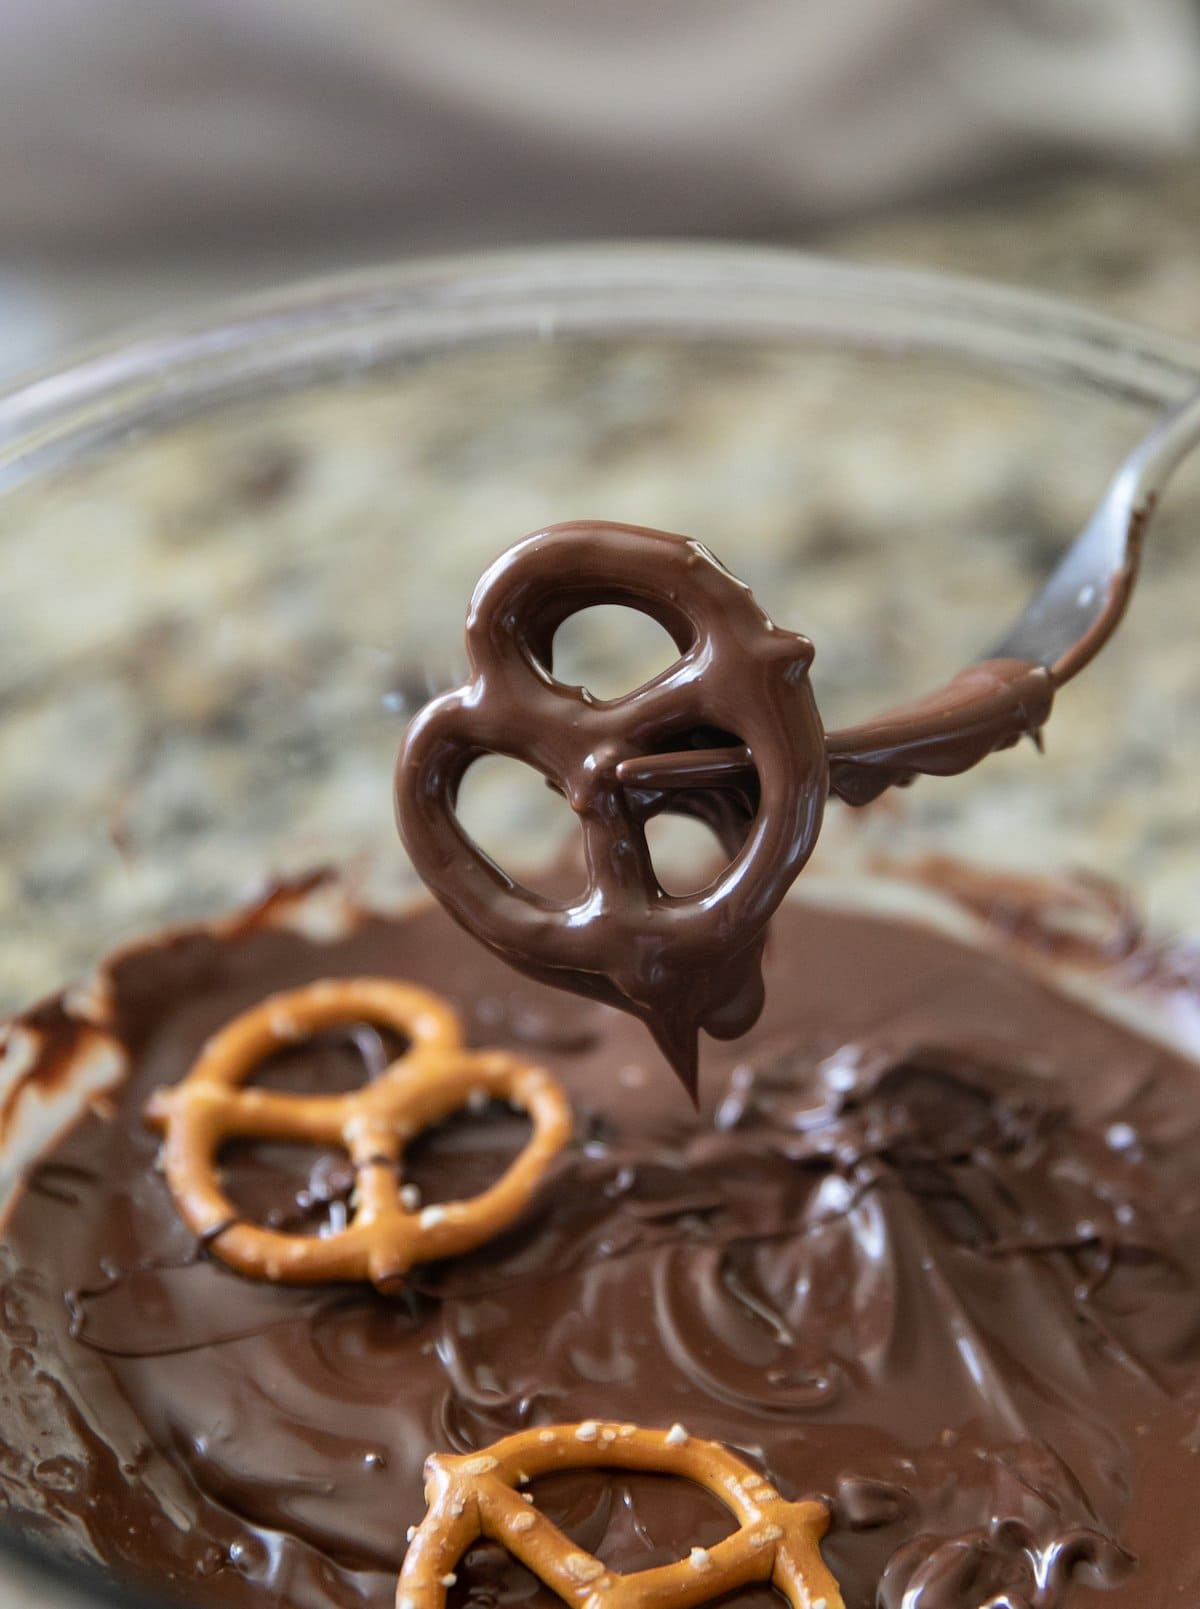 pulling chocolate covered pretzel out of melted chocolate